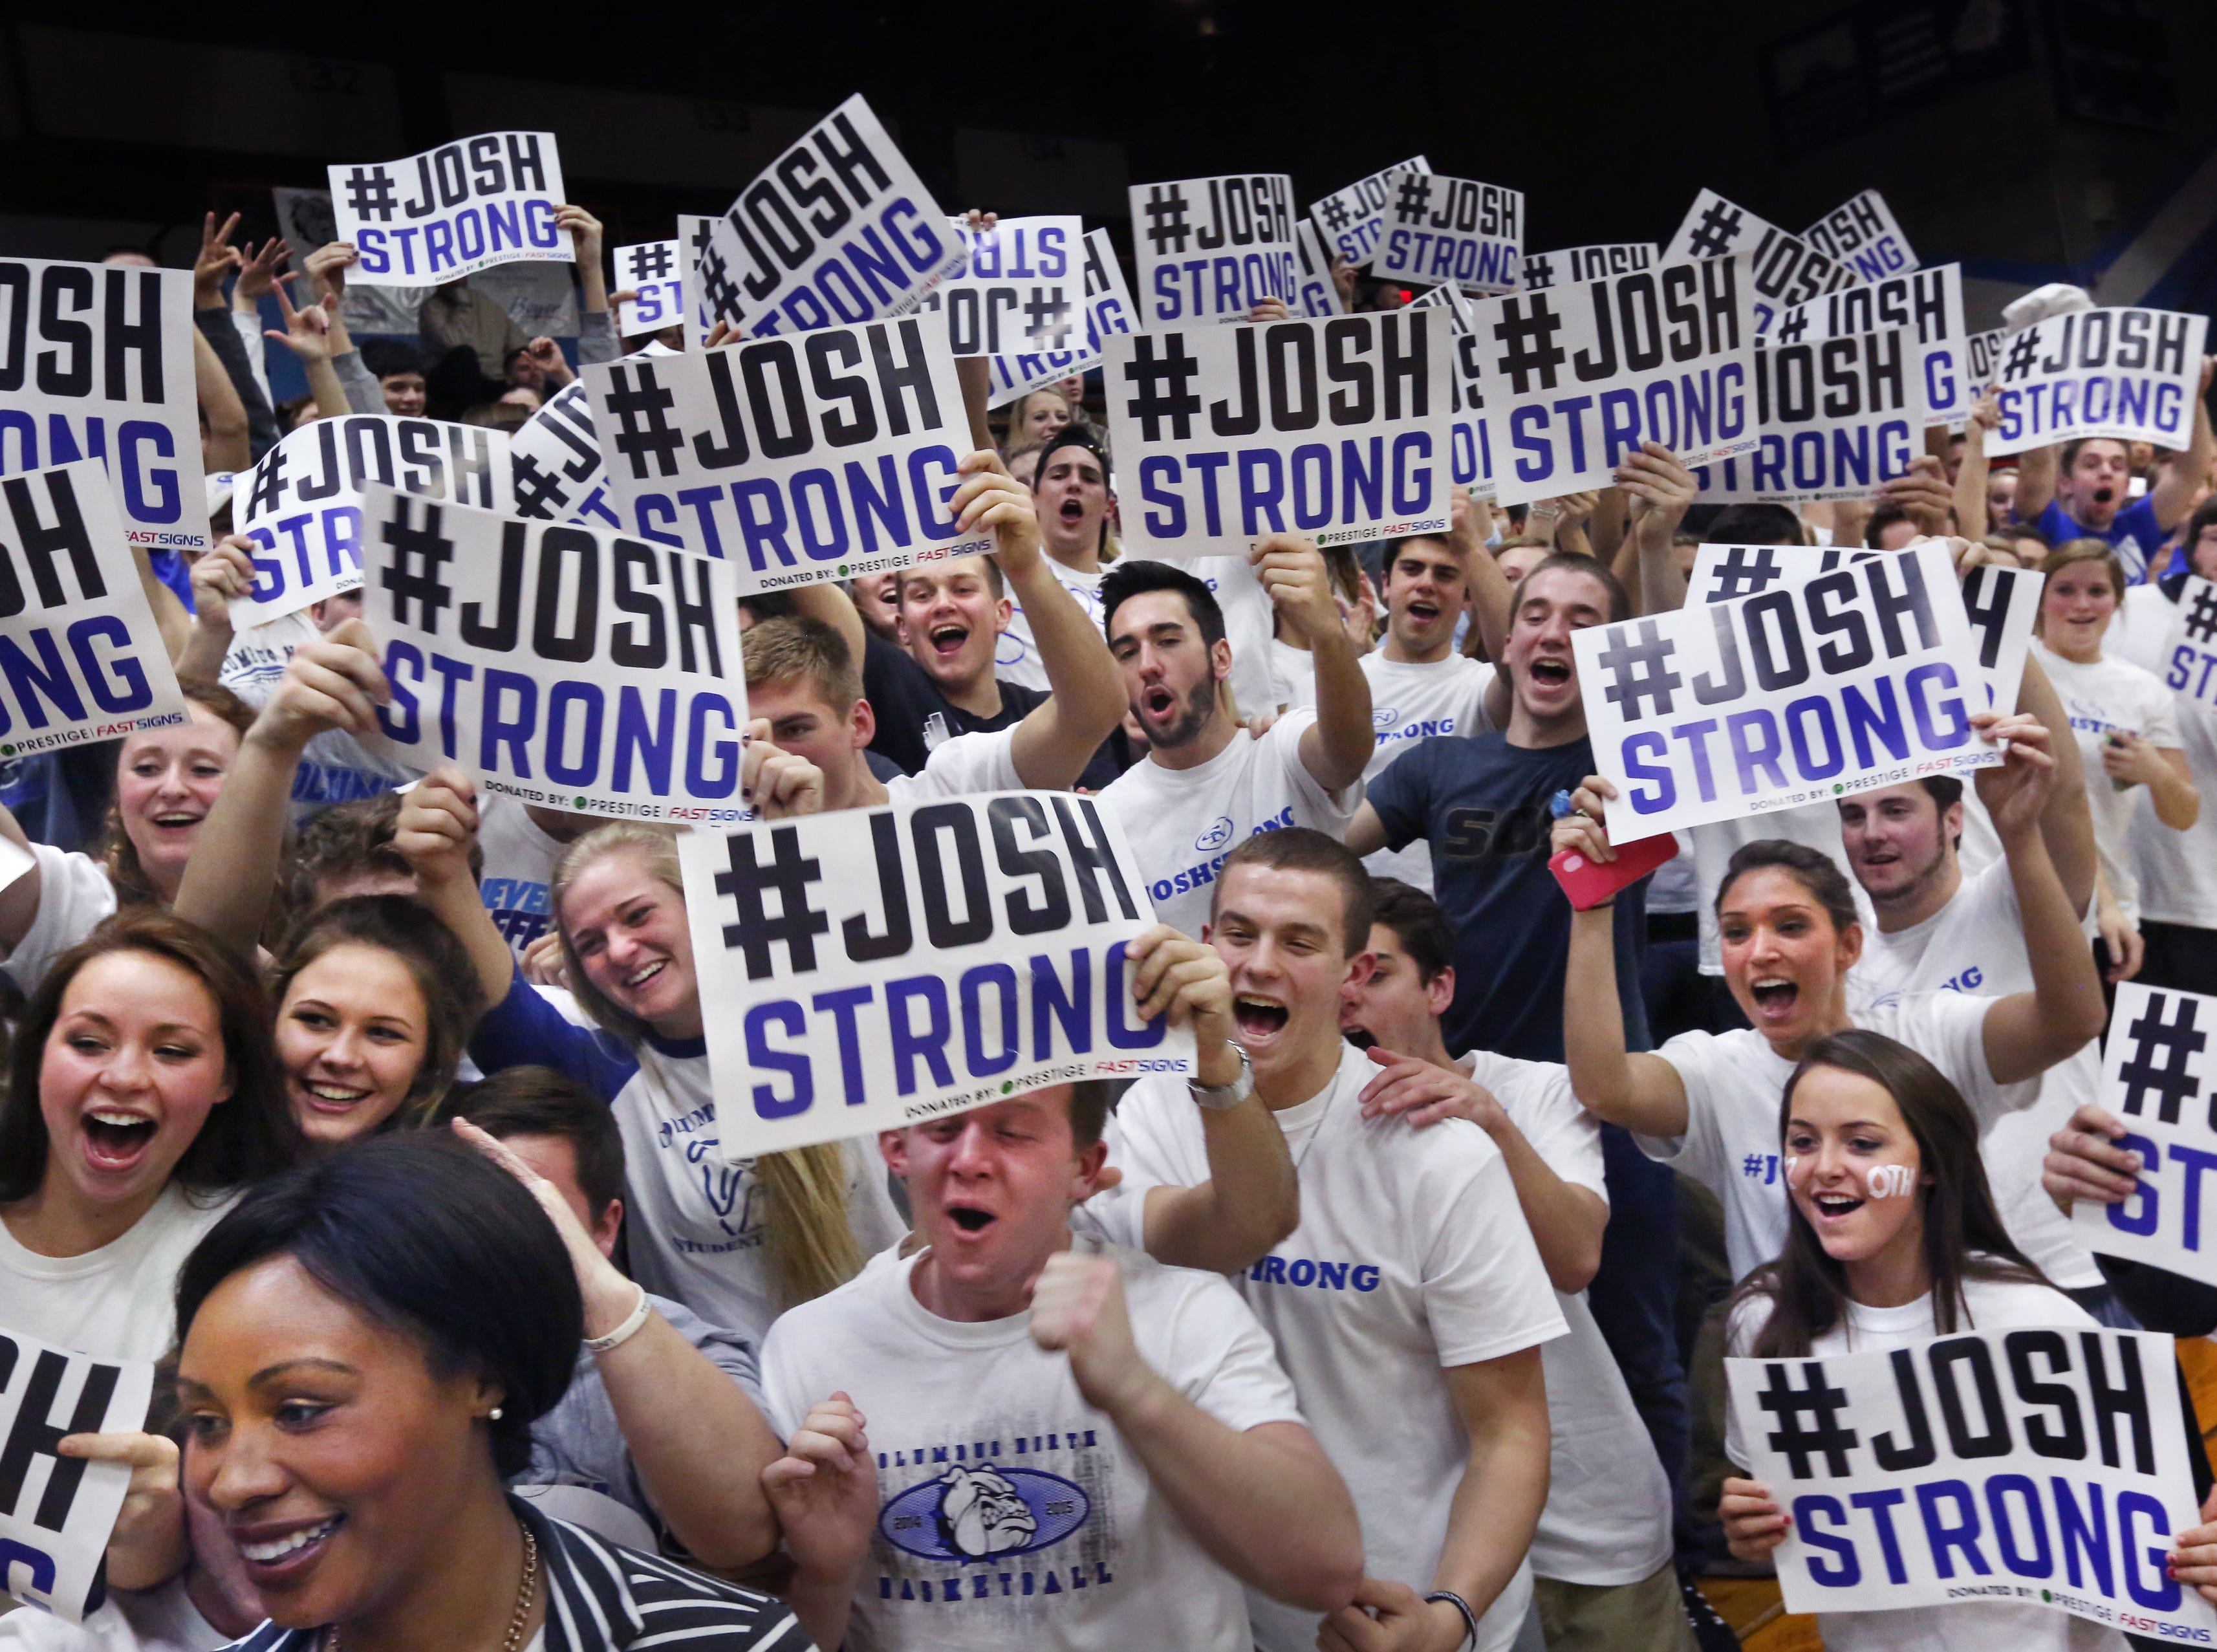 Columbus North students cheer wildly holding their #Joshstrong signs, Feb. 3, 2015. The team's star basketball player, Josh Speidel, was critically injured in a two-car accident on U.S. 31.